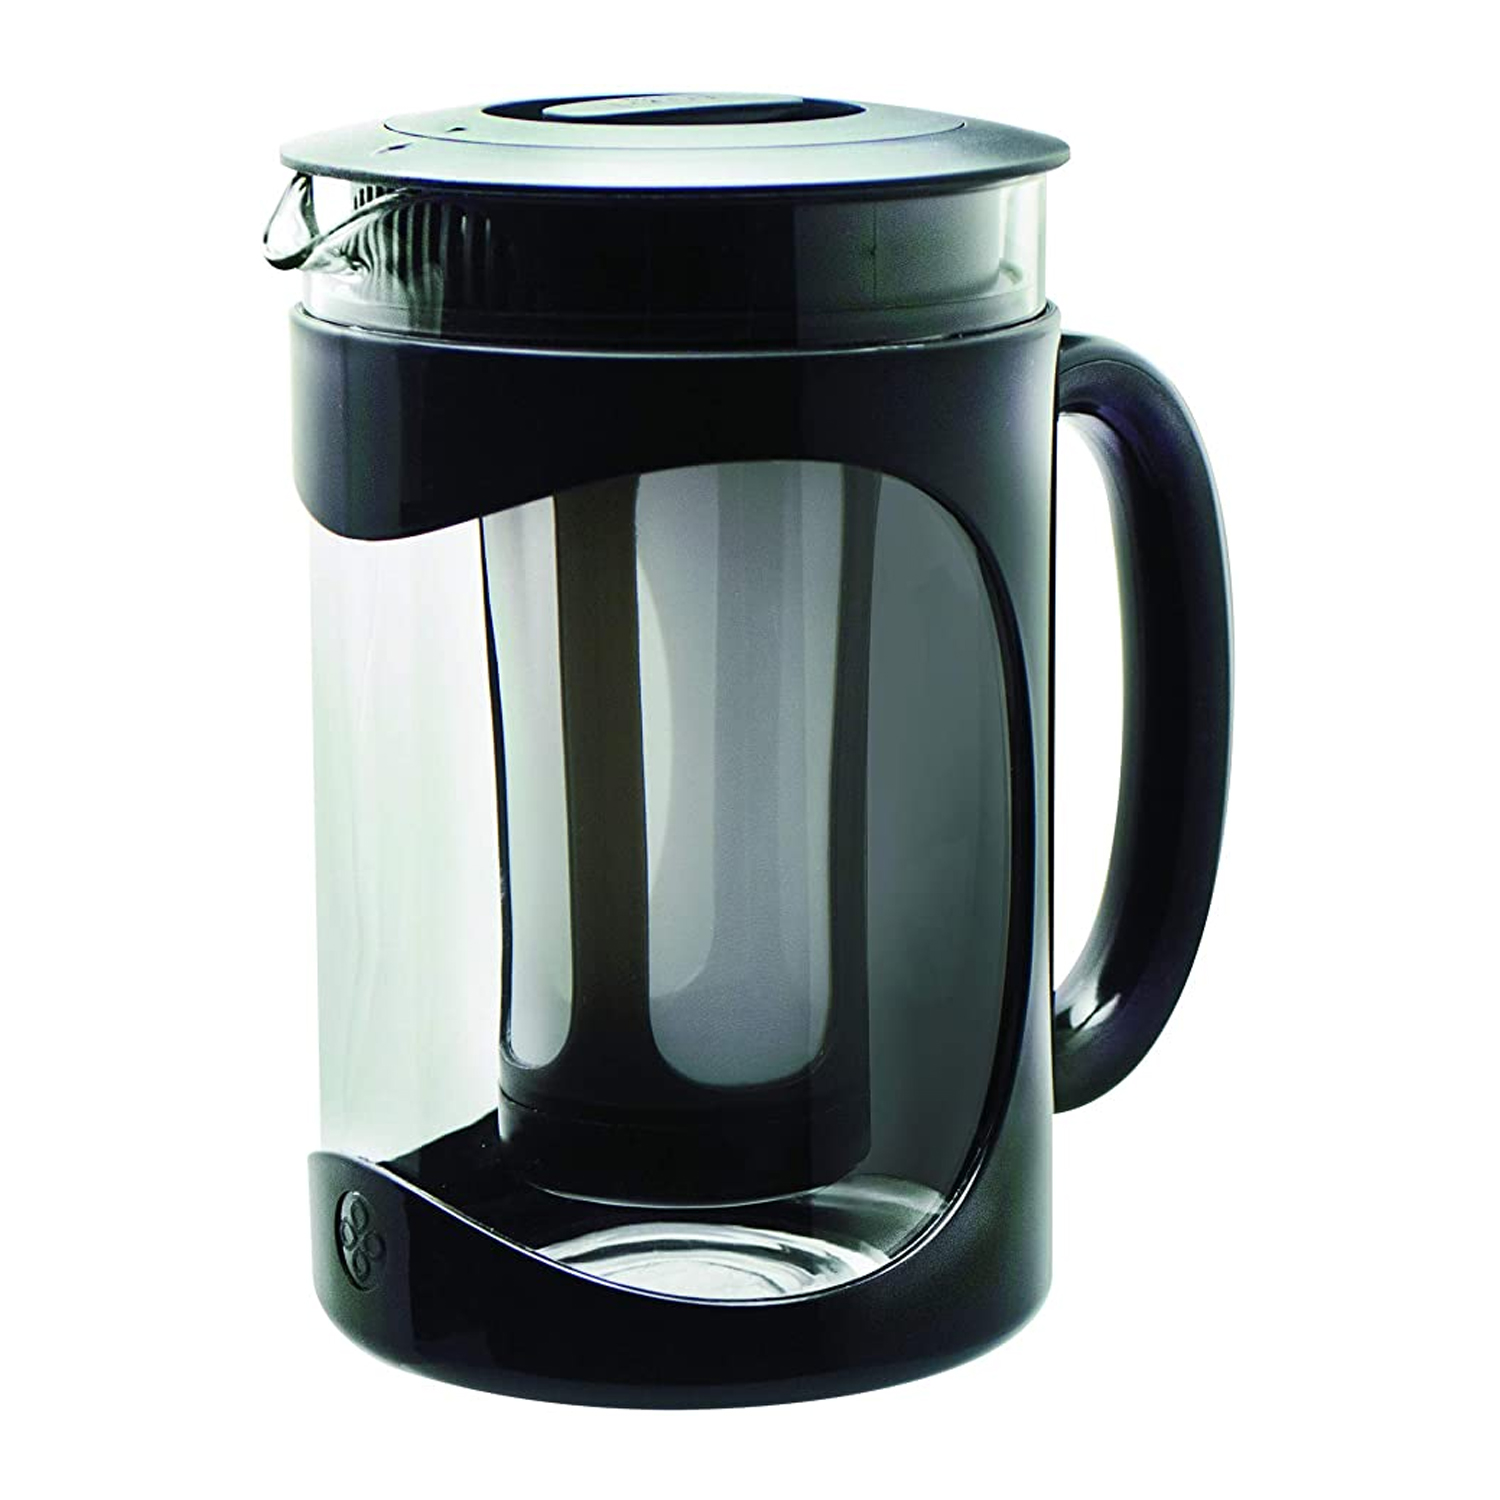 Black and clear small iced coffee maker by primula burke